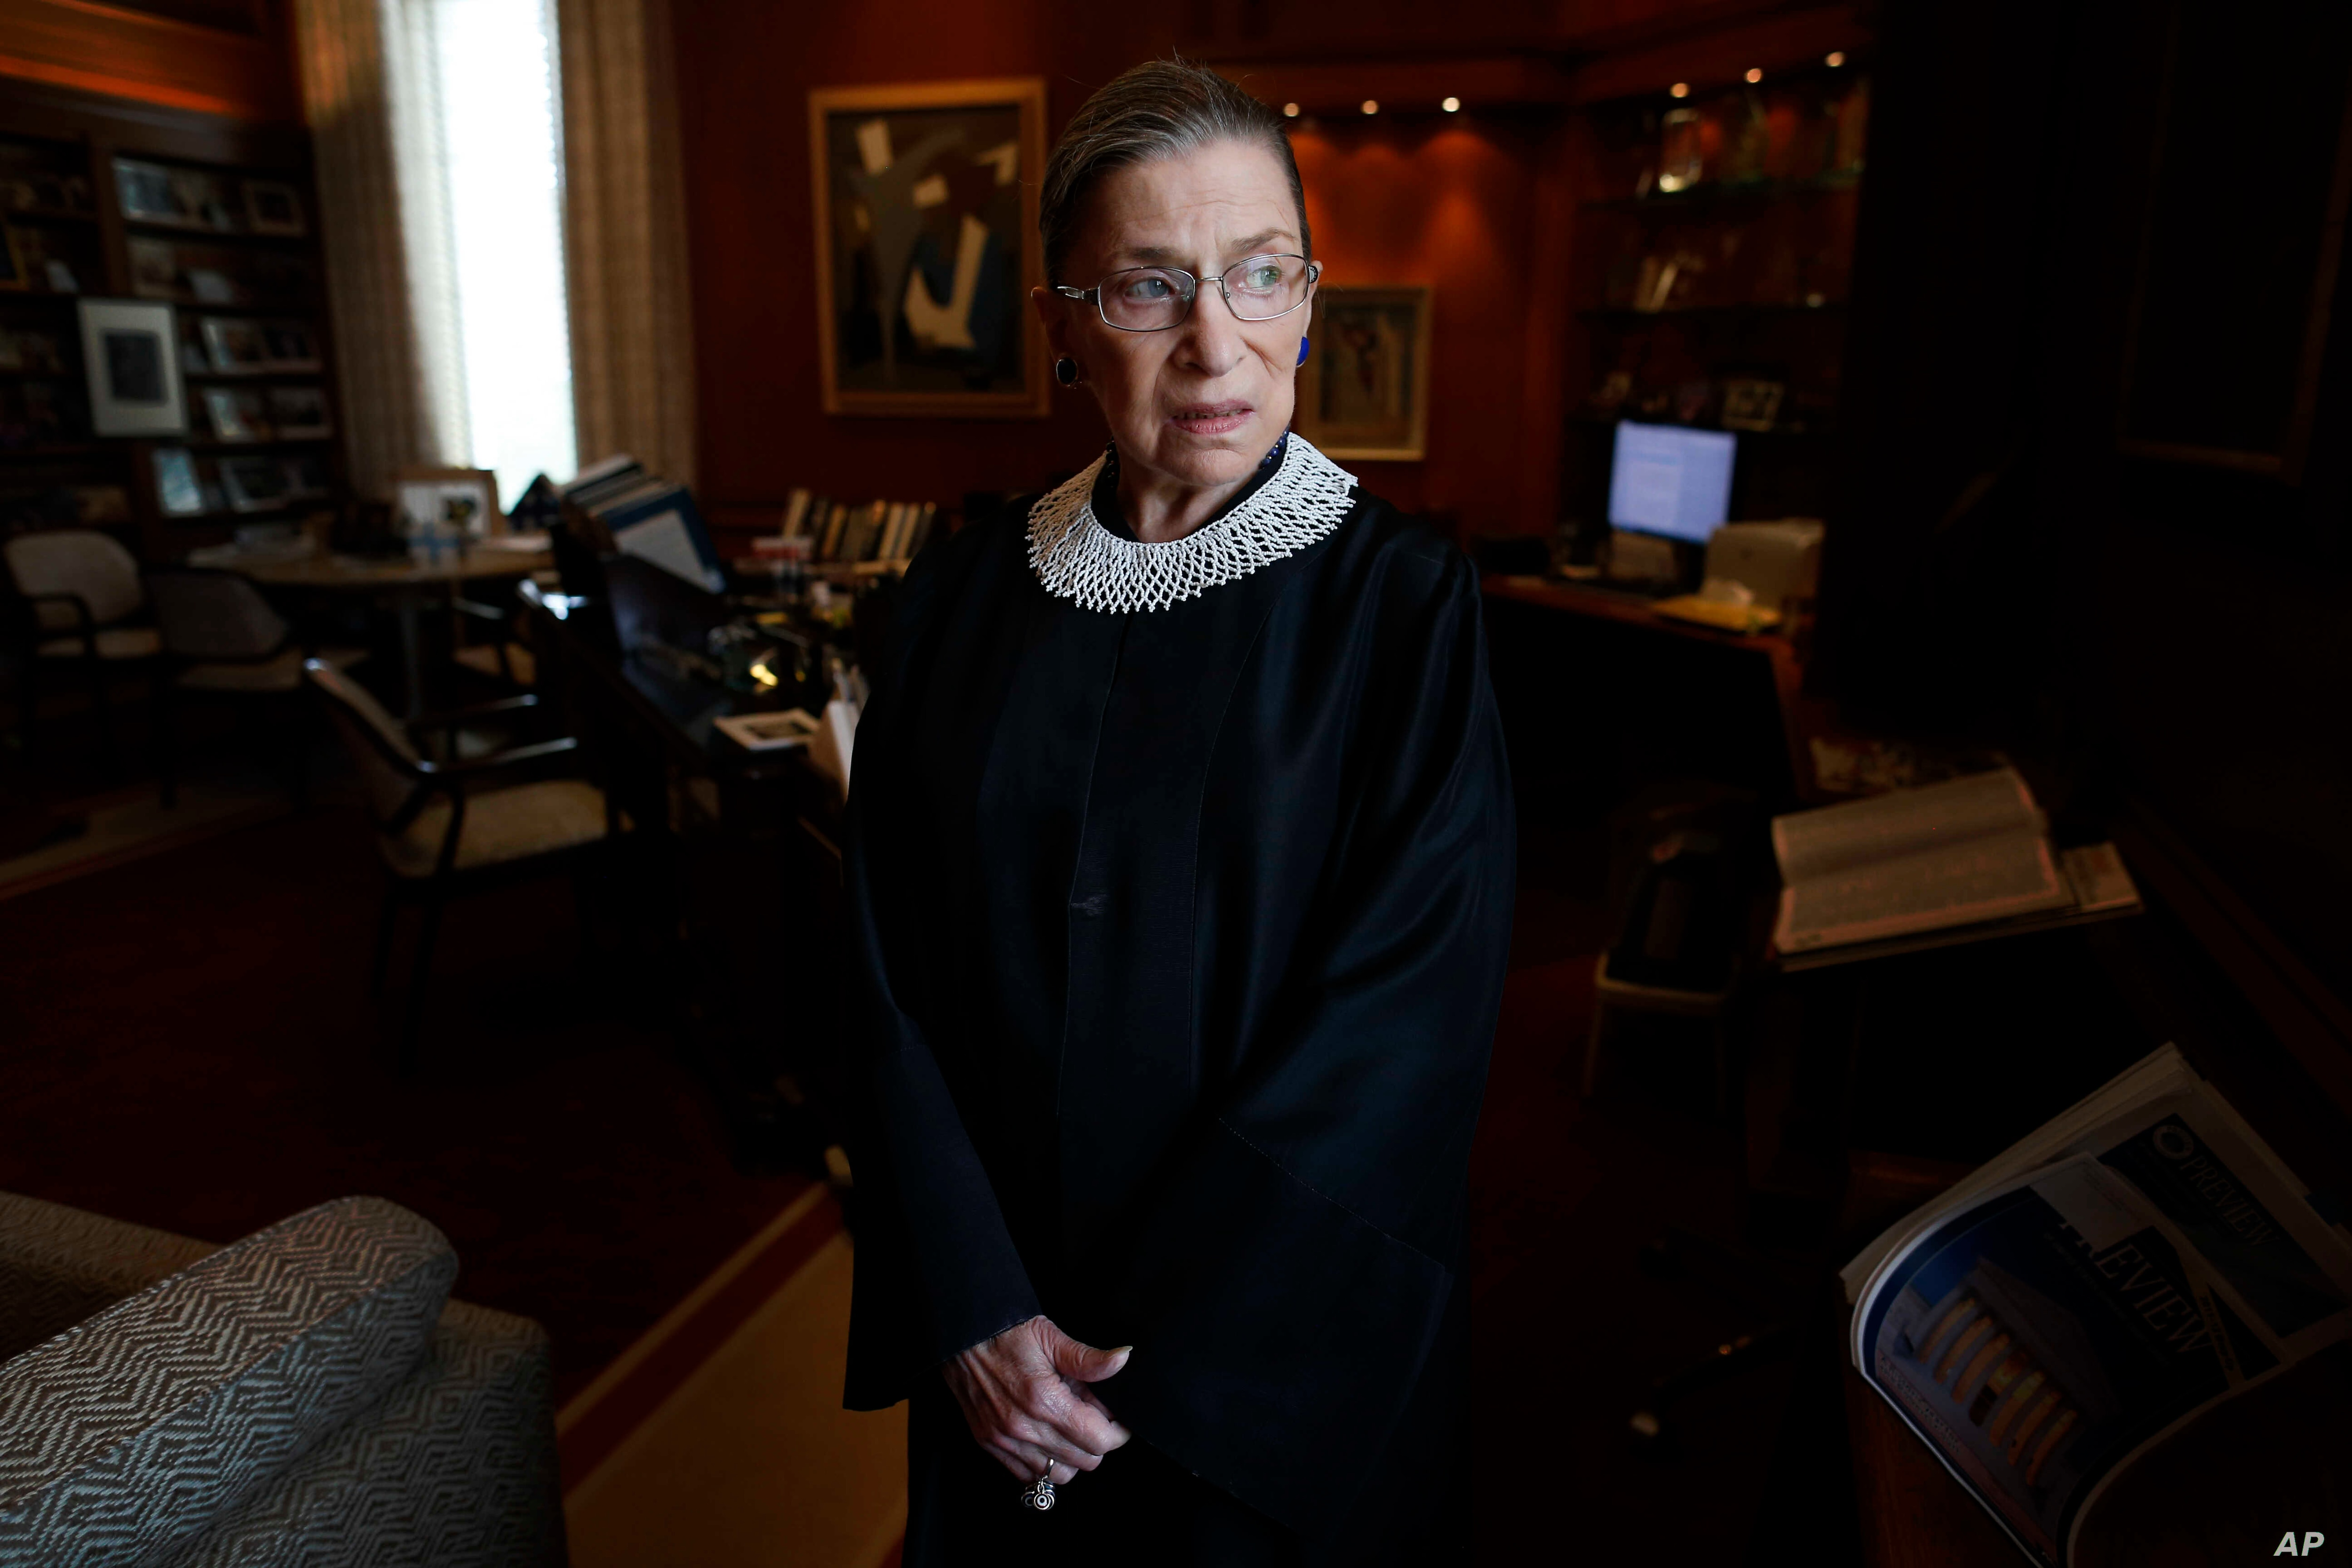 Associate Justice Ruth Bader Ginsburg in her chambers at the Supreme Court in Washington, July 24, 2013